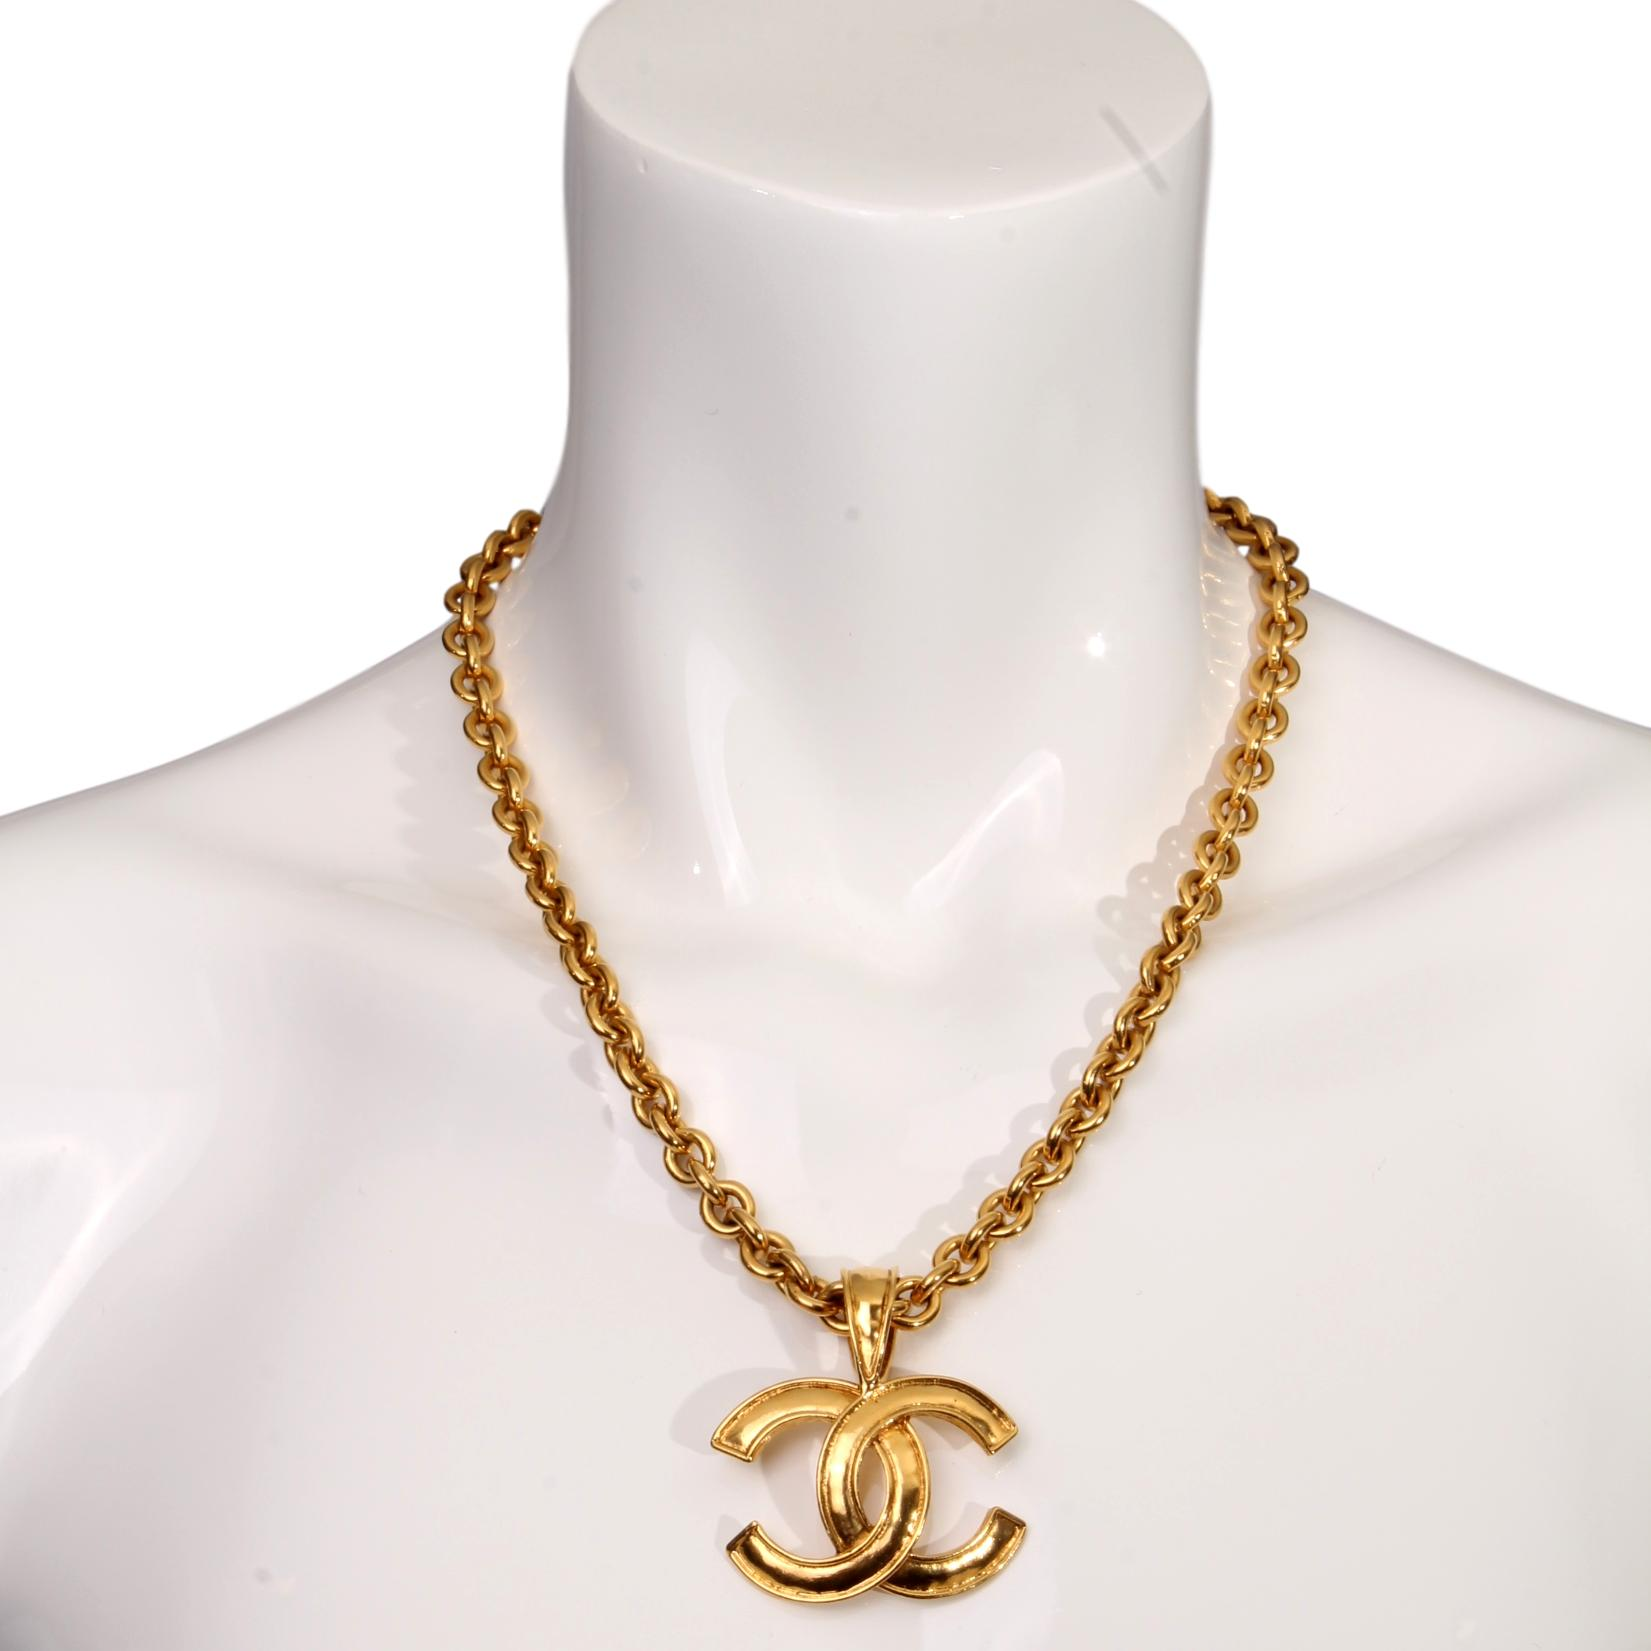 daisy chain curb gold online necklace ibb locket at johnlewis buyibb pendant pdp heart yellow main rsp